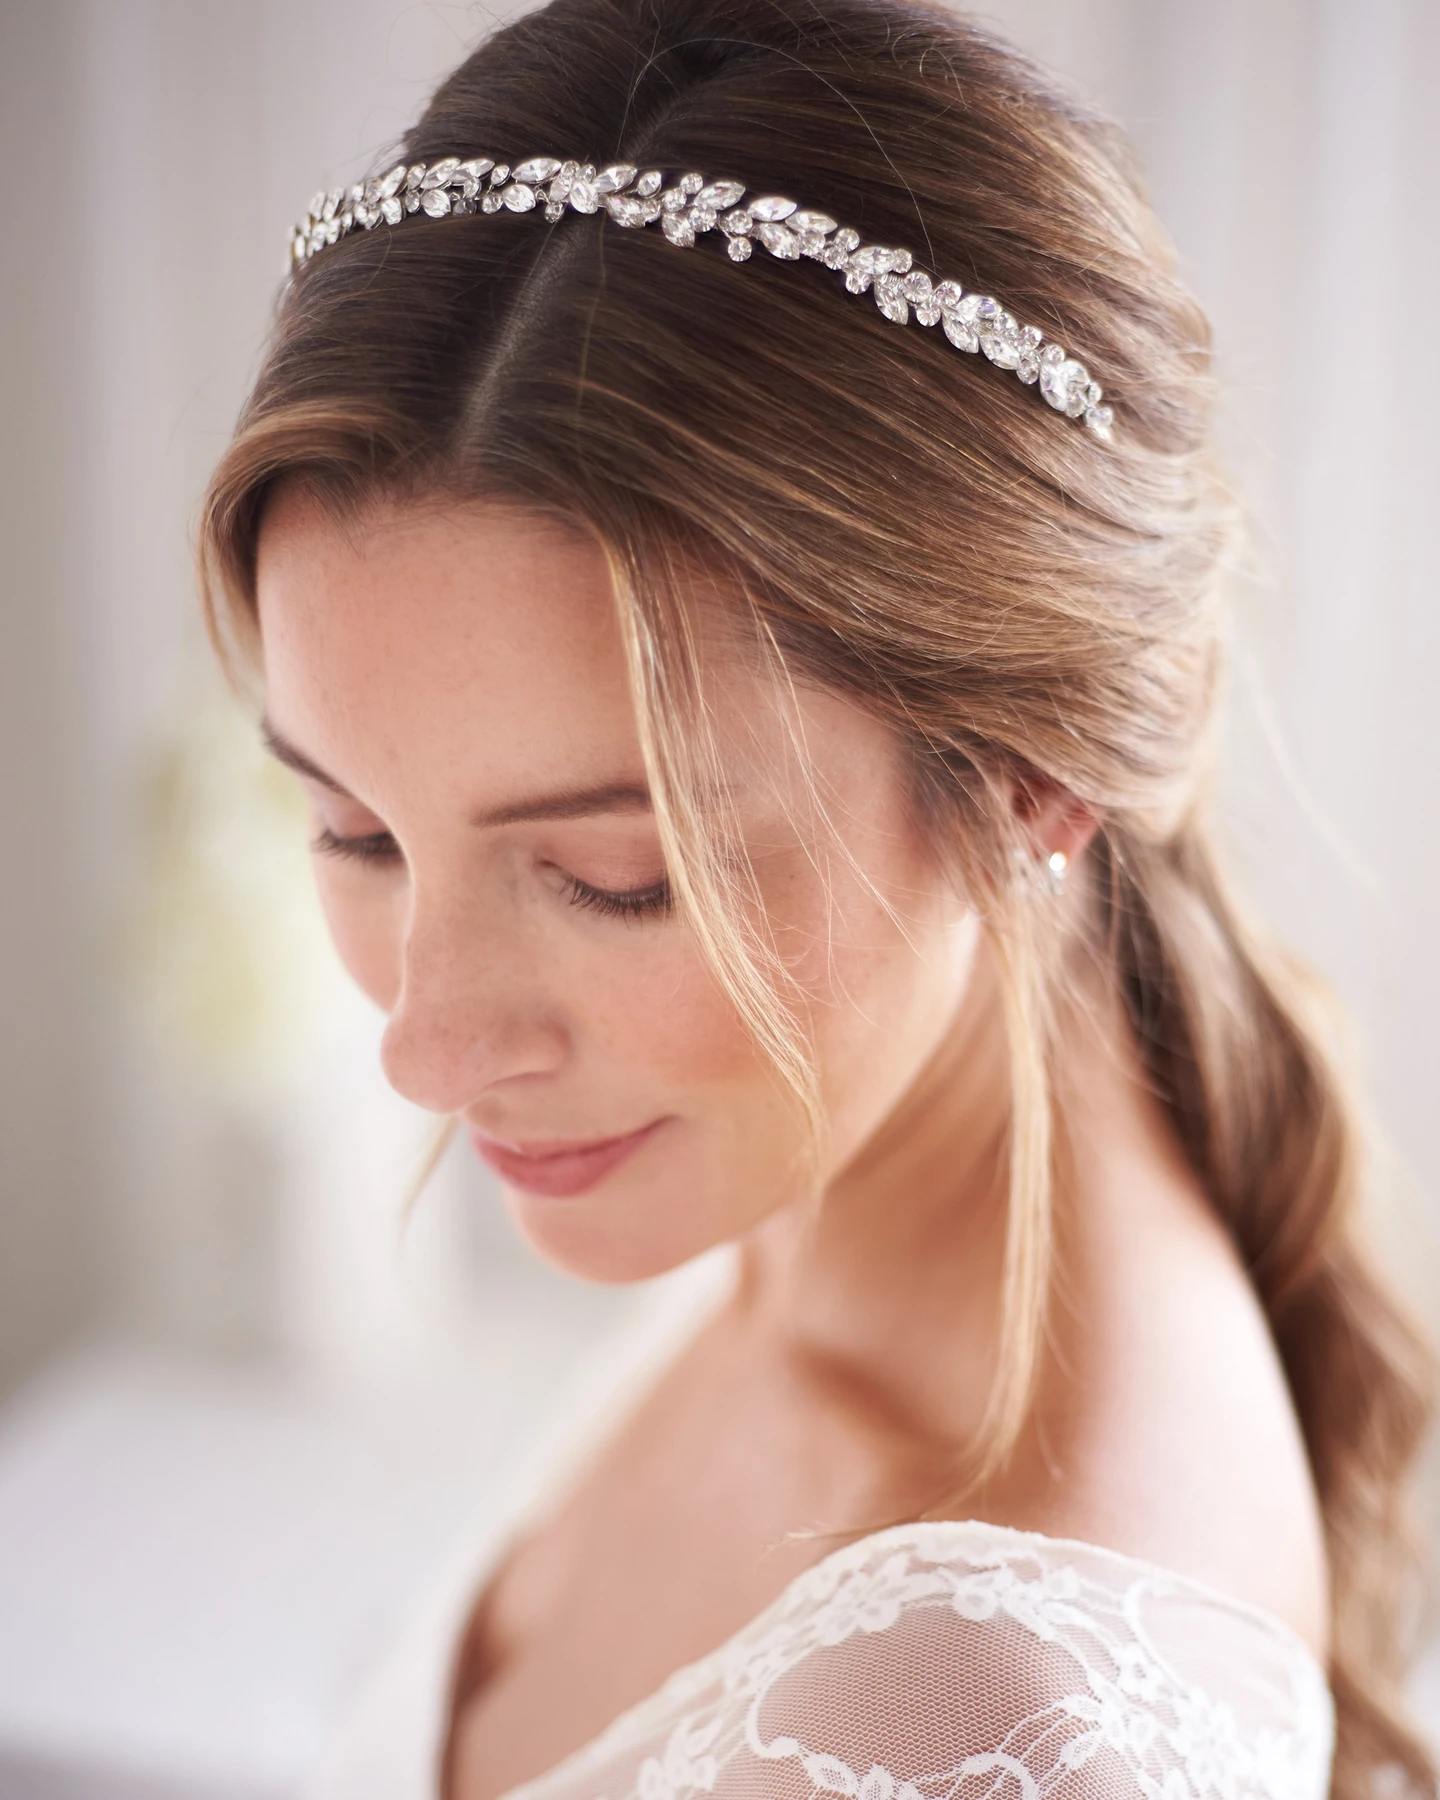 Bling wedding accessories Dainty, Darling & Full Of Lustrous Shimmer Hand-Wired Opals & Crystal Gemstones